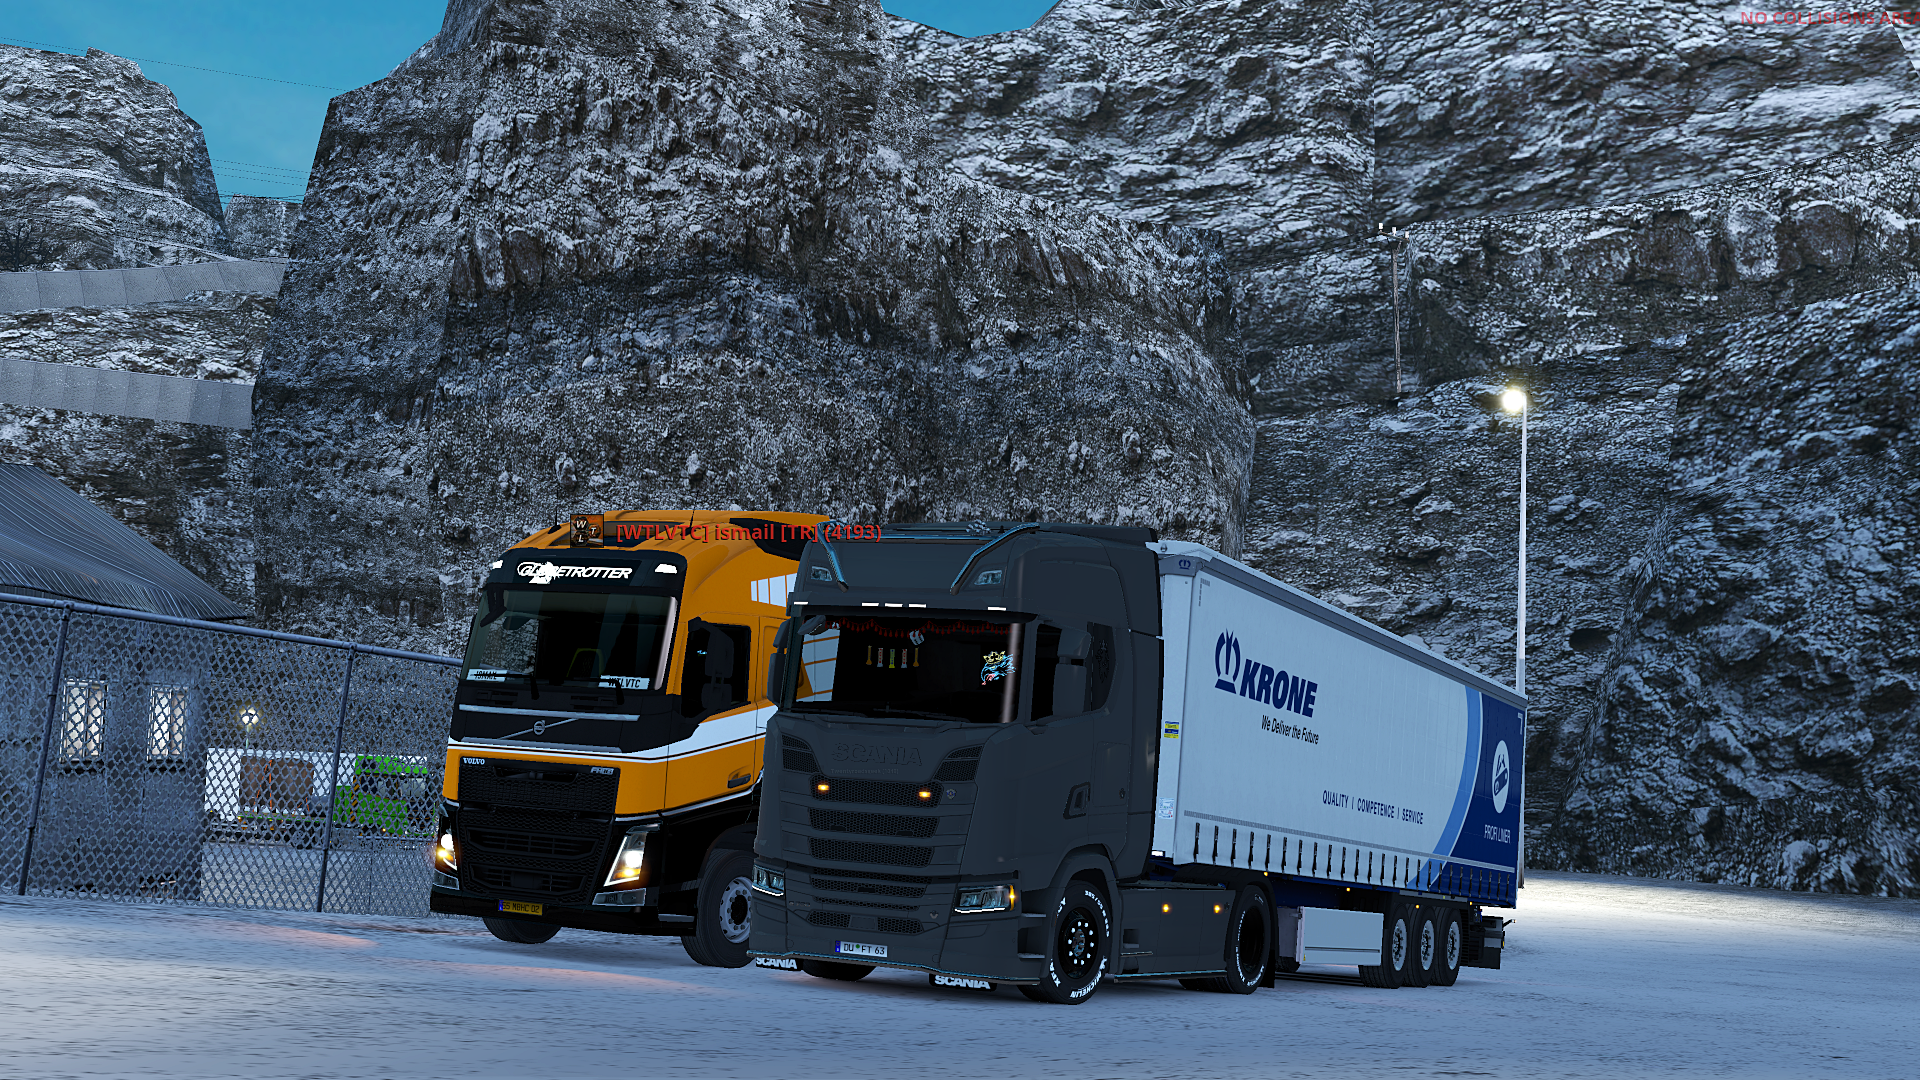 ets2_20190111_232747_00.png